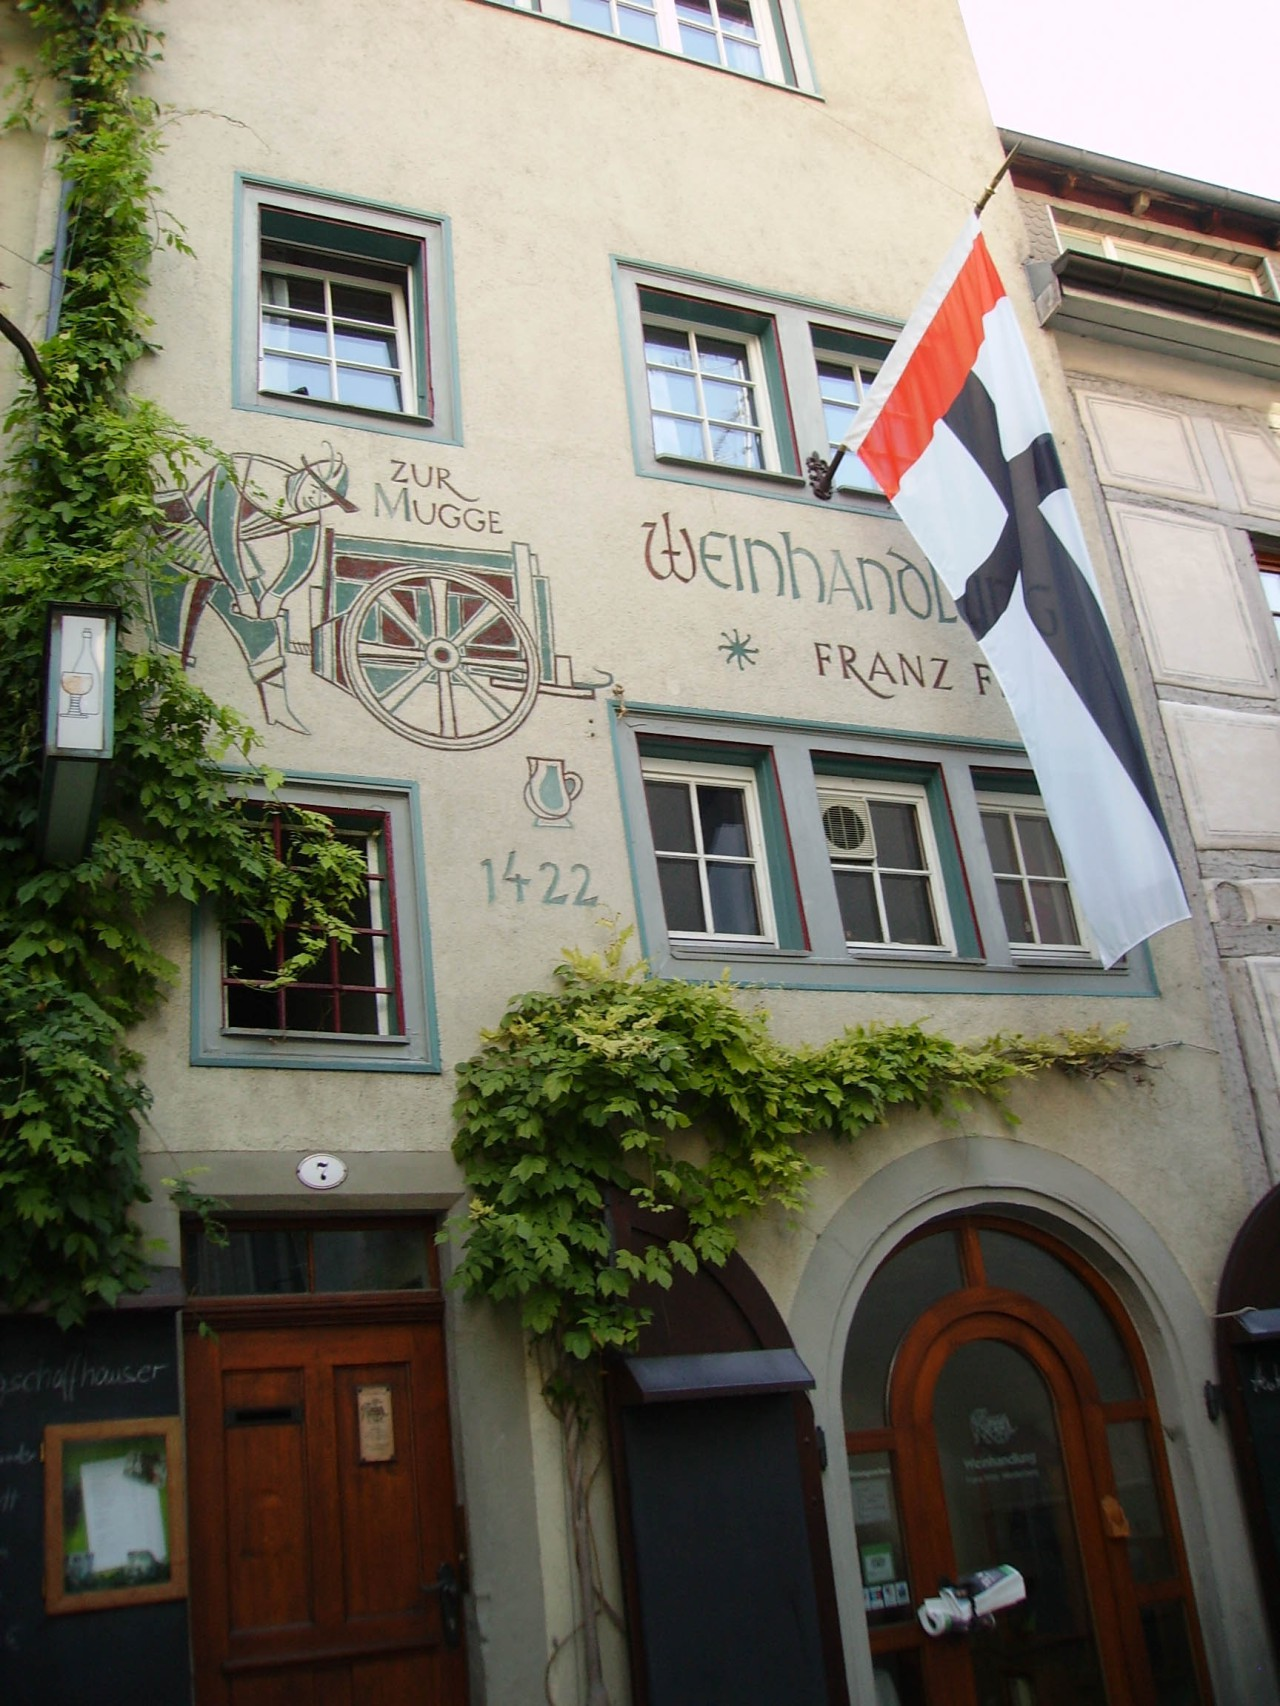 Wine taverns in the Niederburg